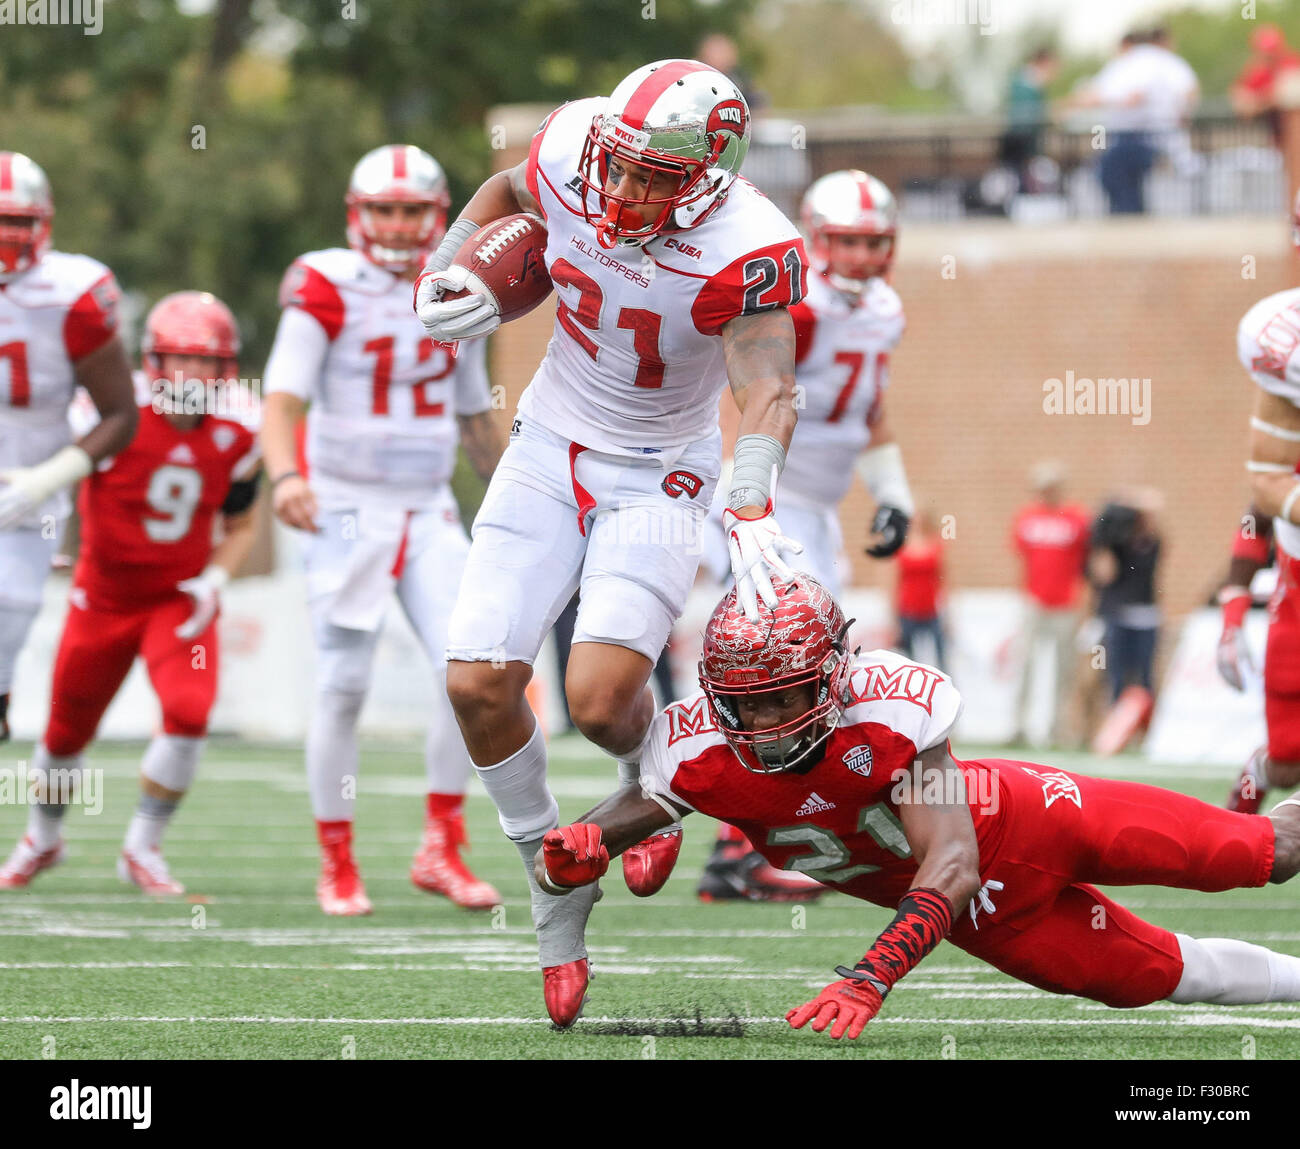 Bowling Green, KY, USA. 26th Sep, 2015. WKU's Jared Dangerfield #21 avoids the diving tackle attempt by Miami's - Stock Image